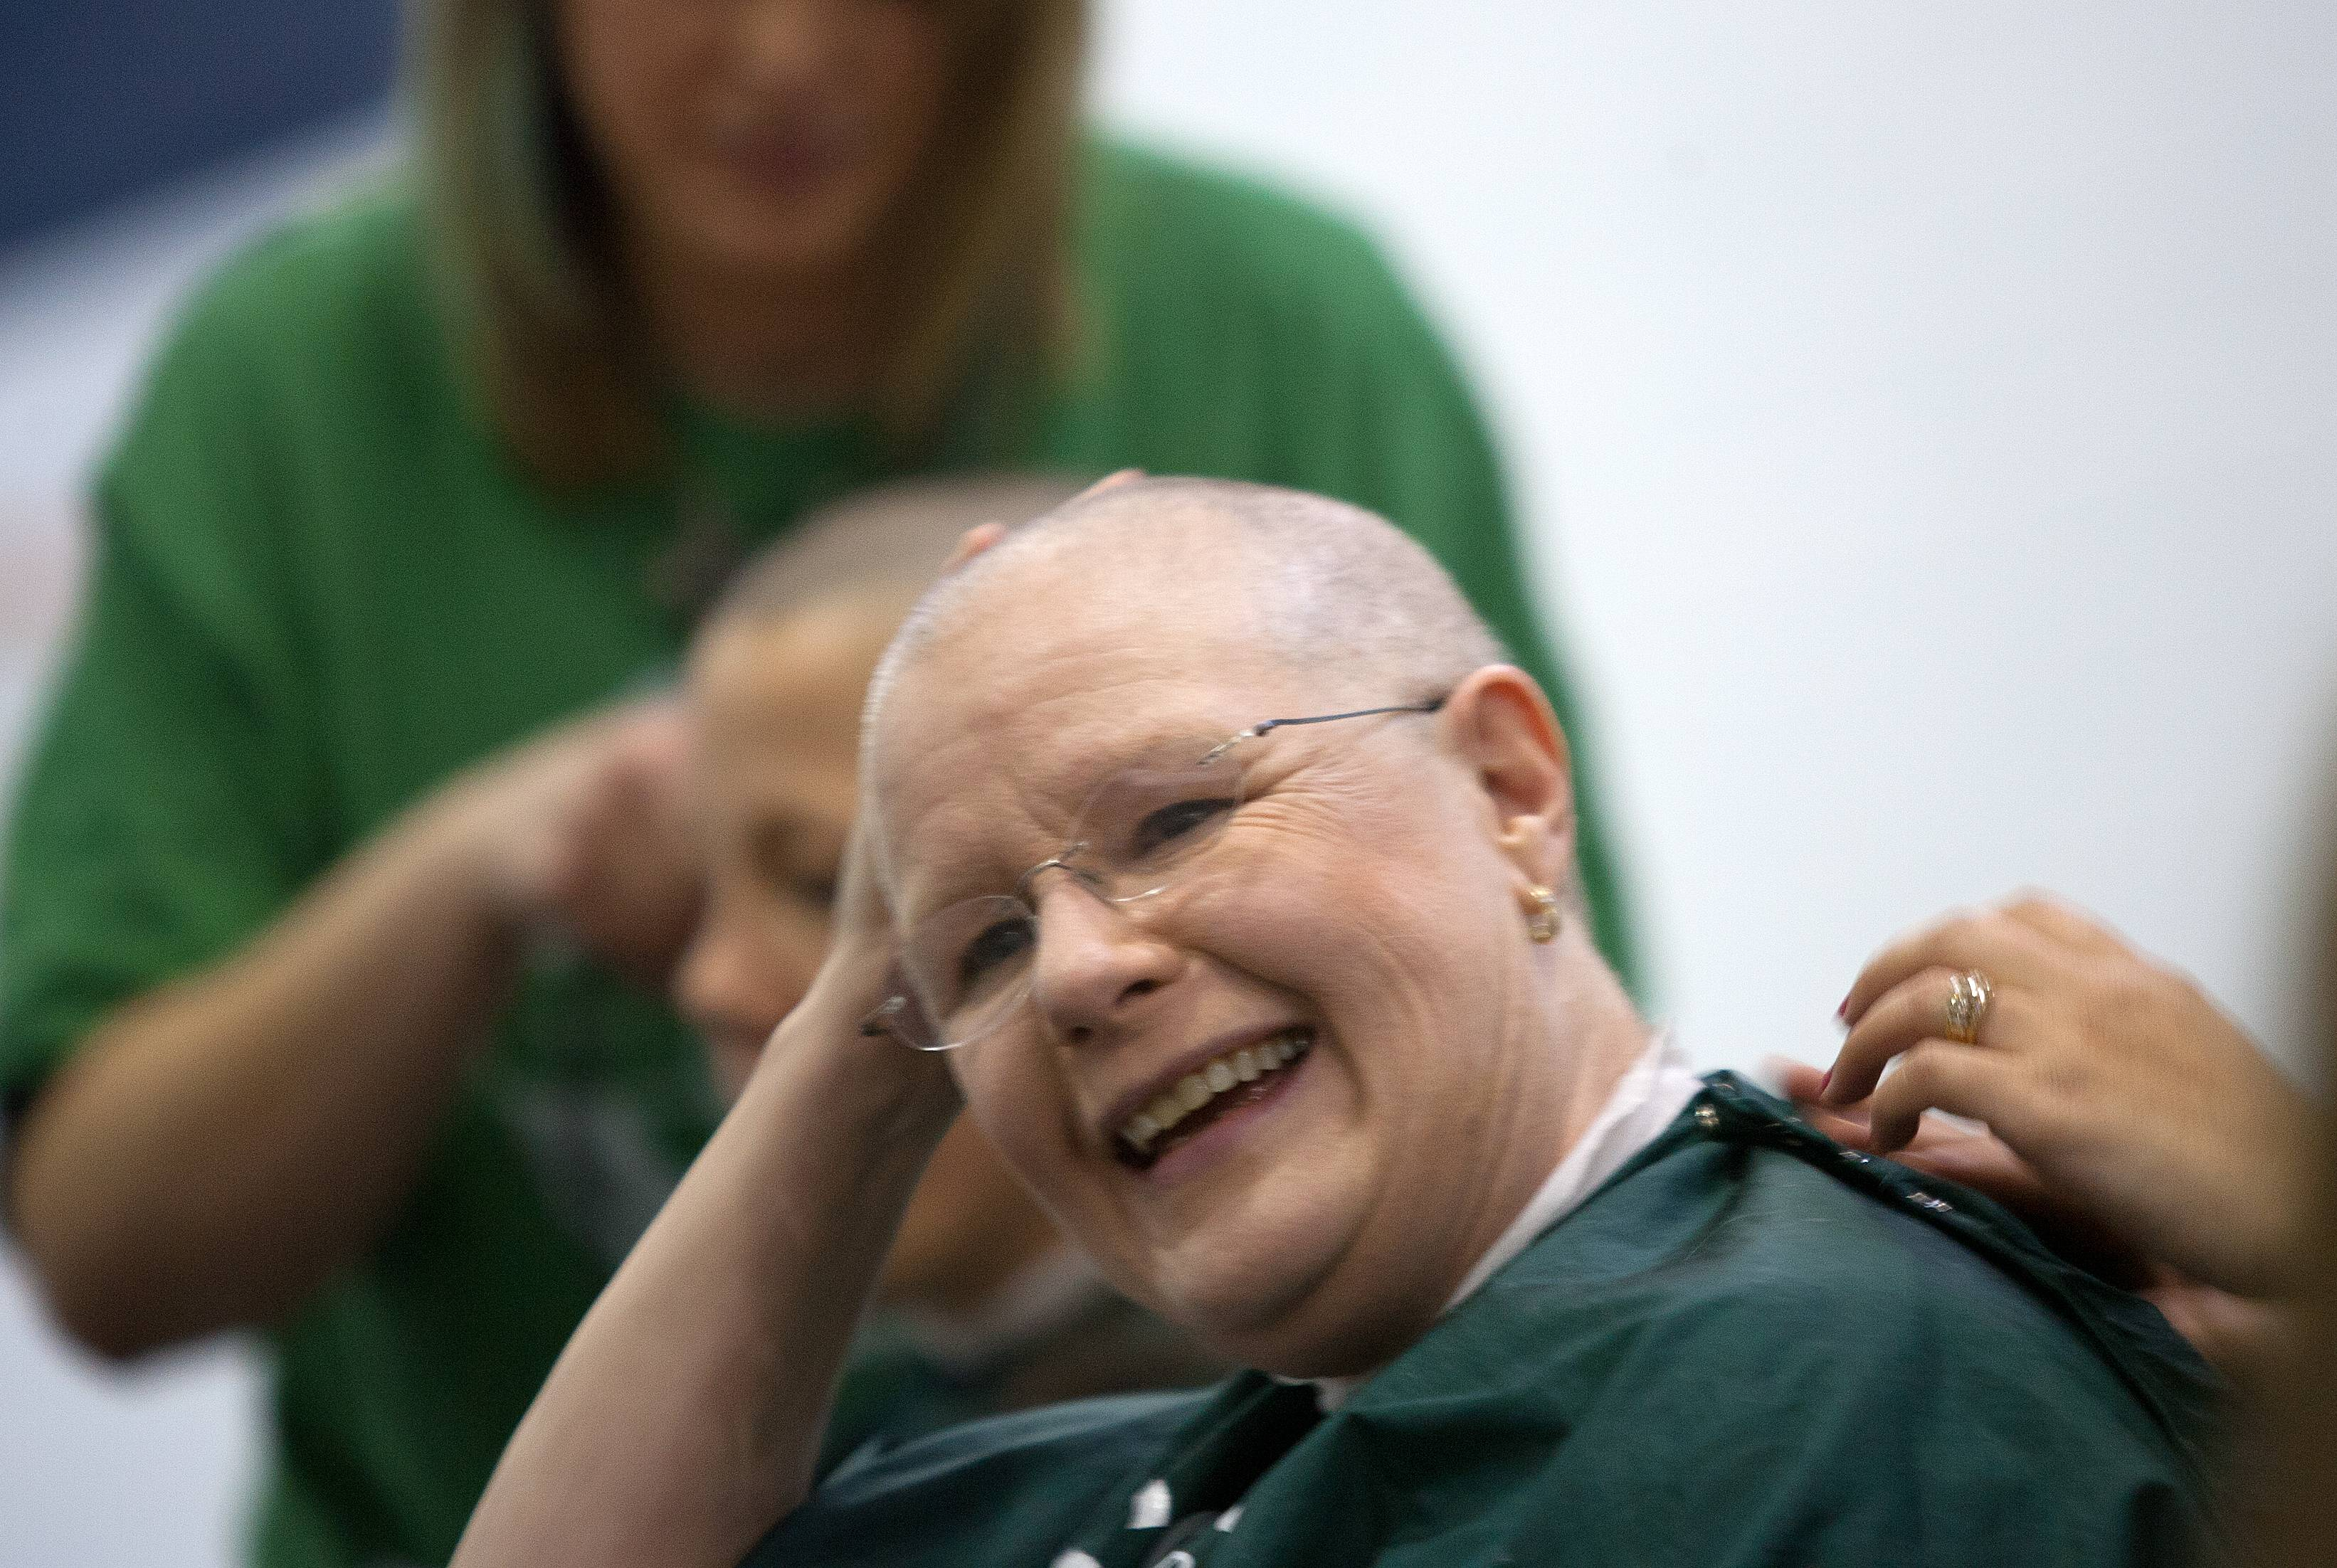 Pam Menzel scratches her head after getting her head shaved during a St. Baldrick's fundraiser Friday at Madison Elementary School in Wheaton.